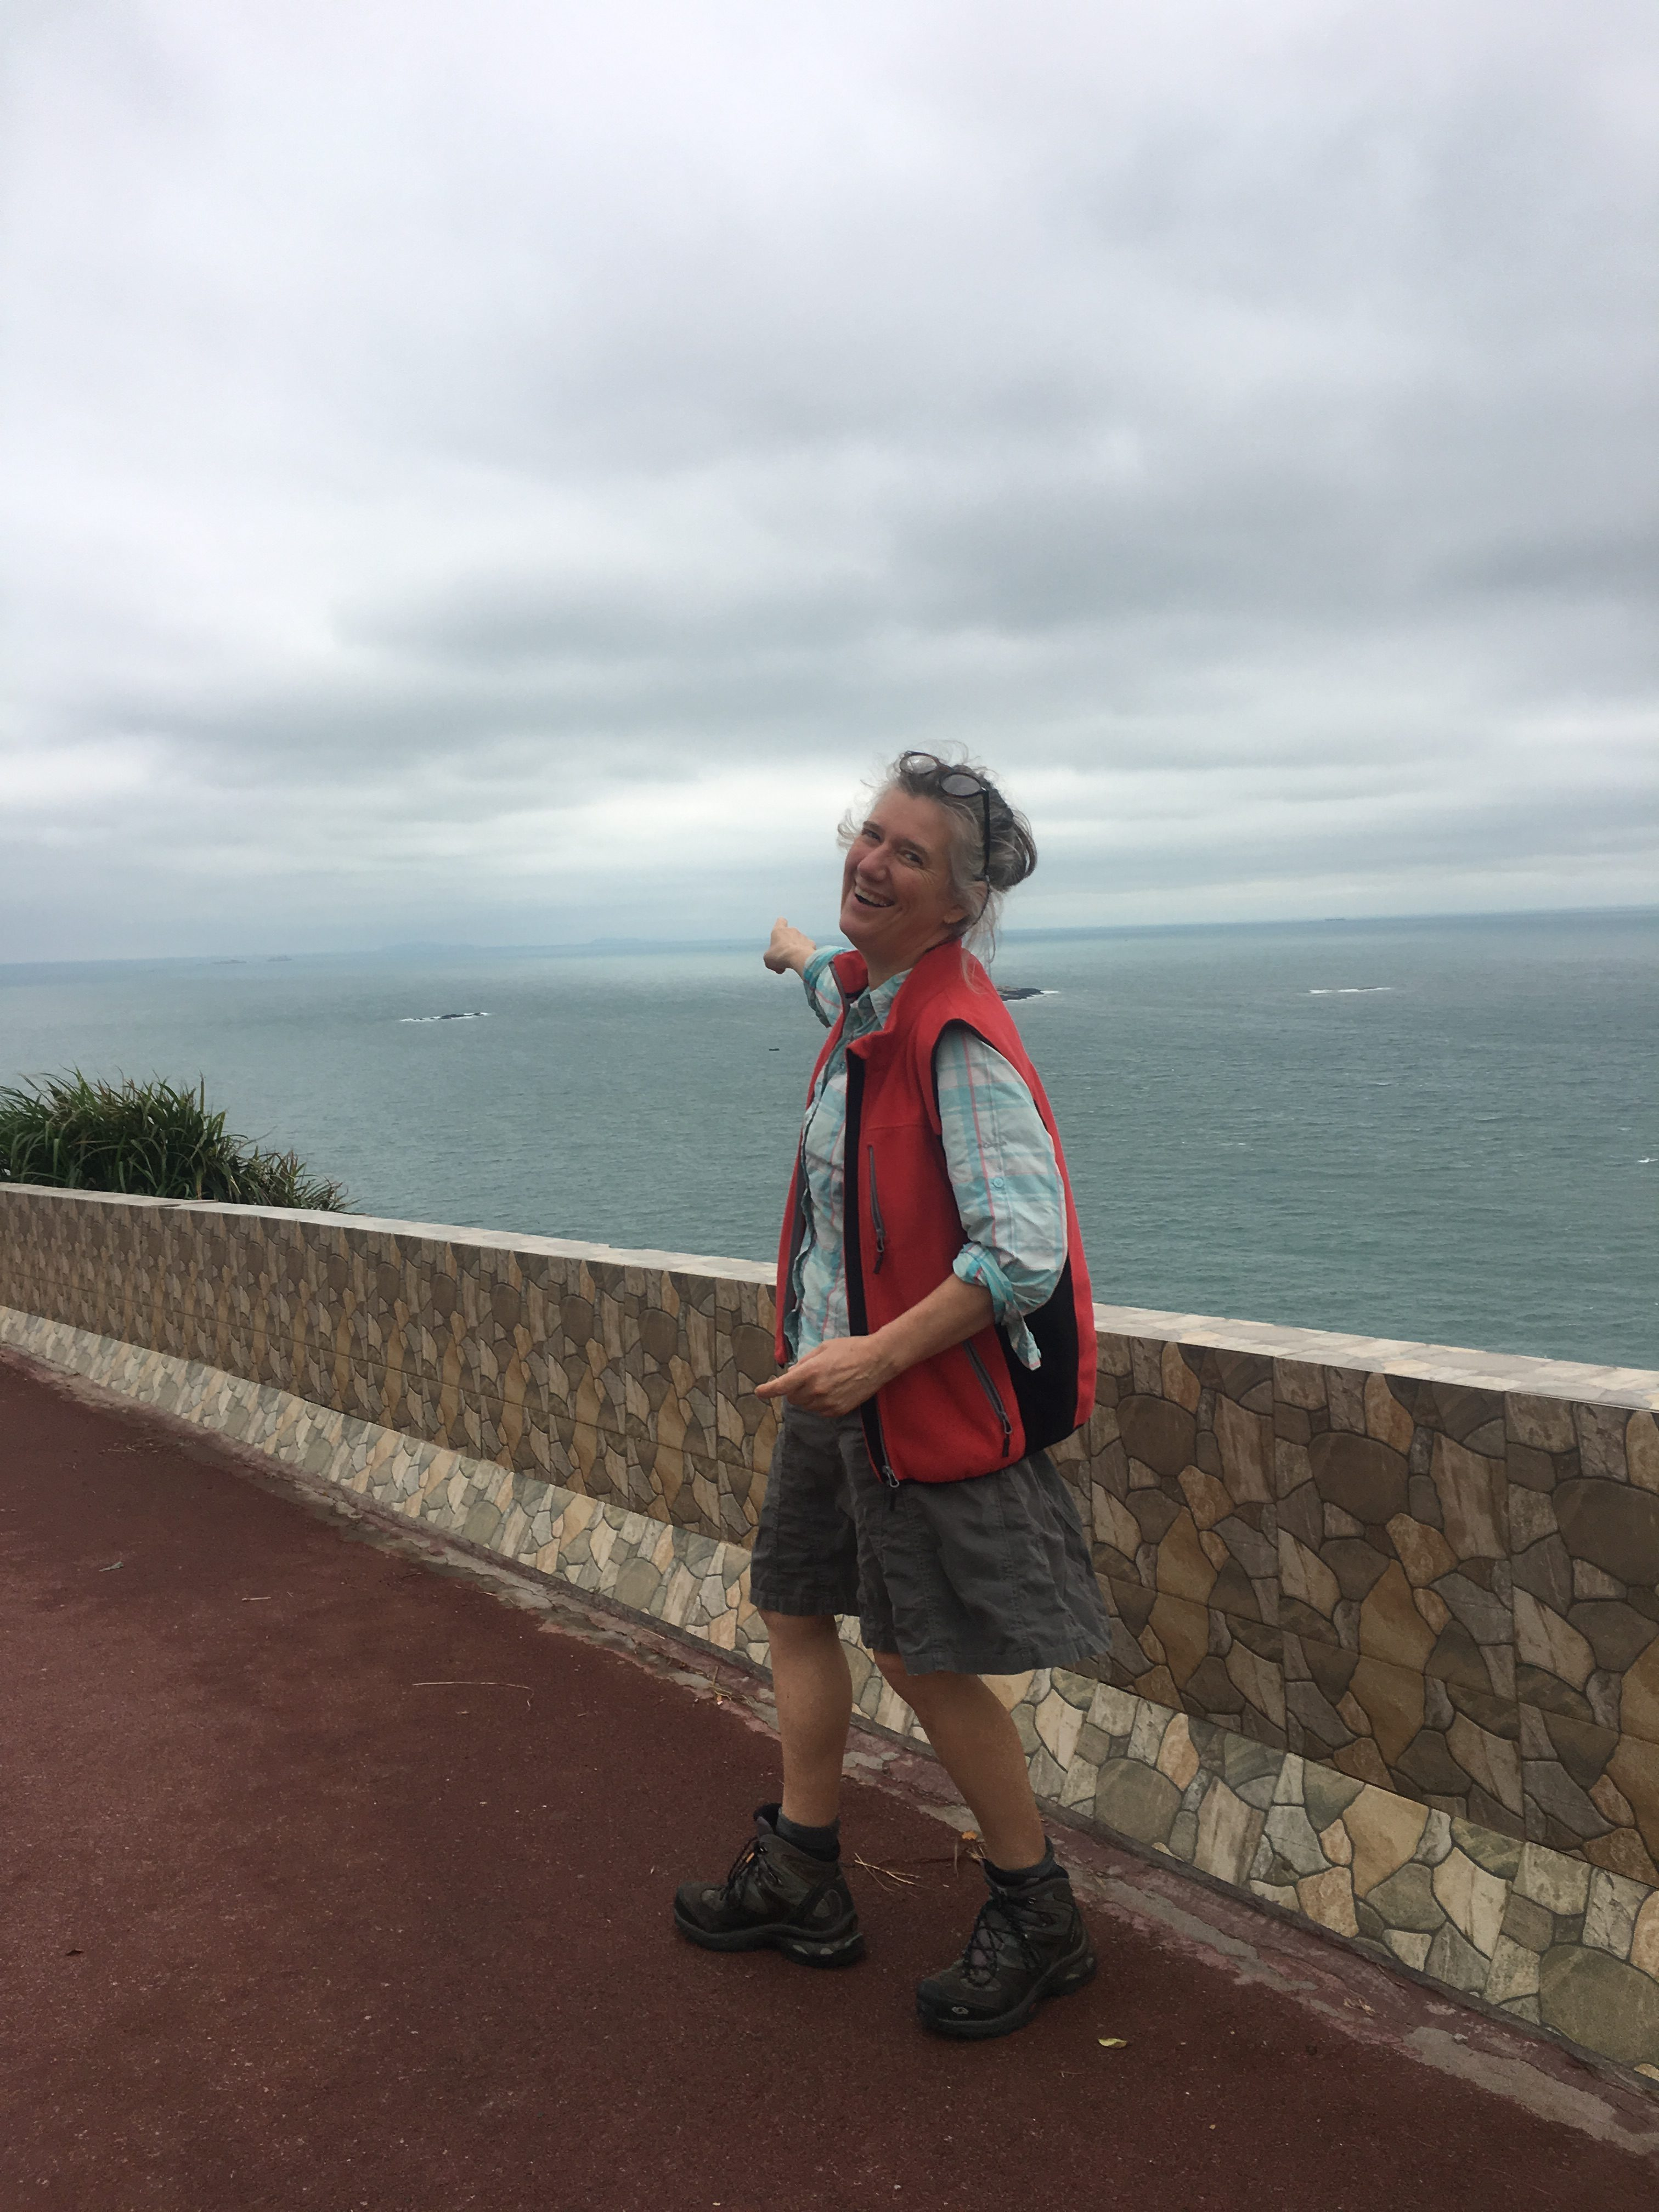 Pointing at Taiwan. Its a long way to swim 170.4 km)